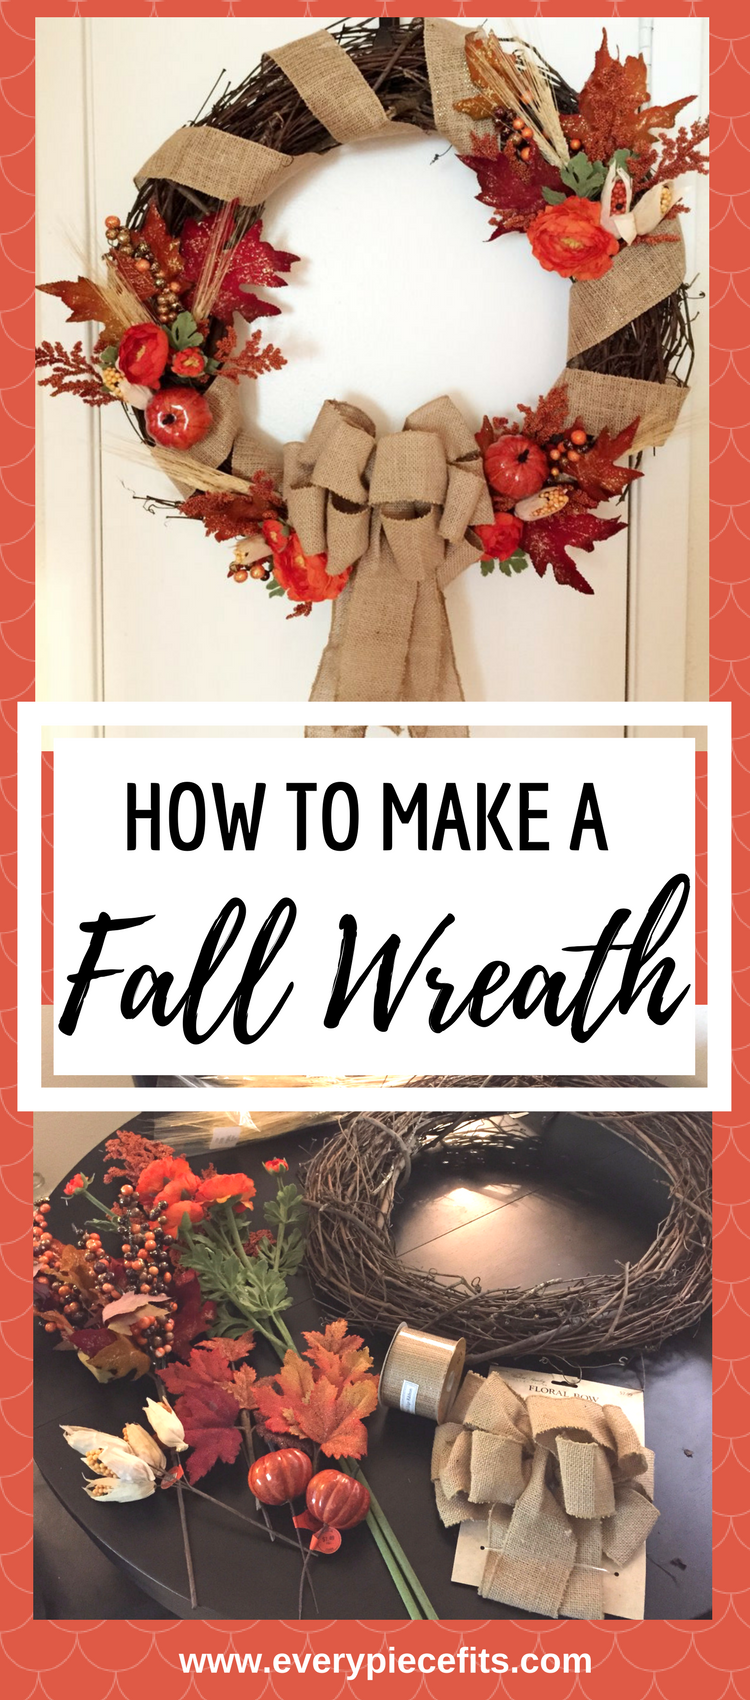 Pinterest How to Make a Fall Wreath.png